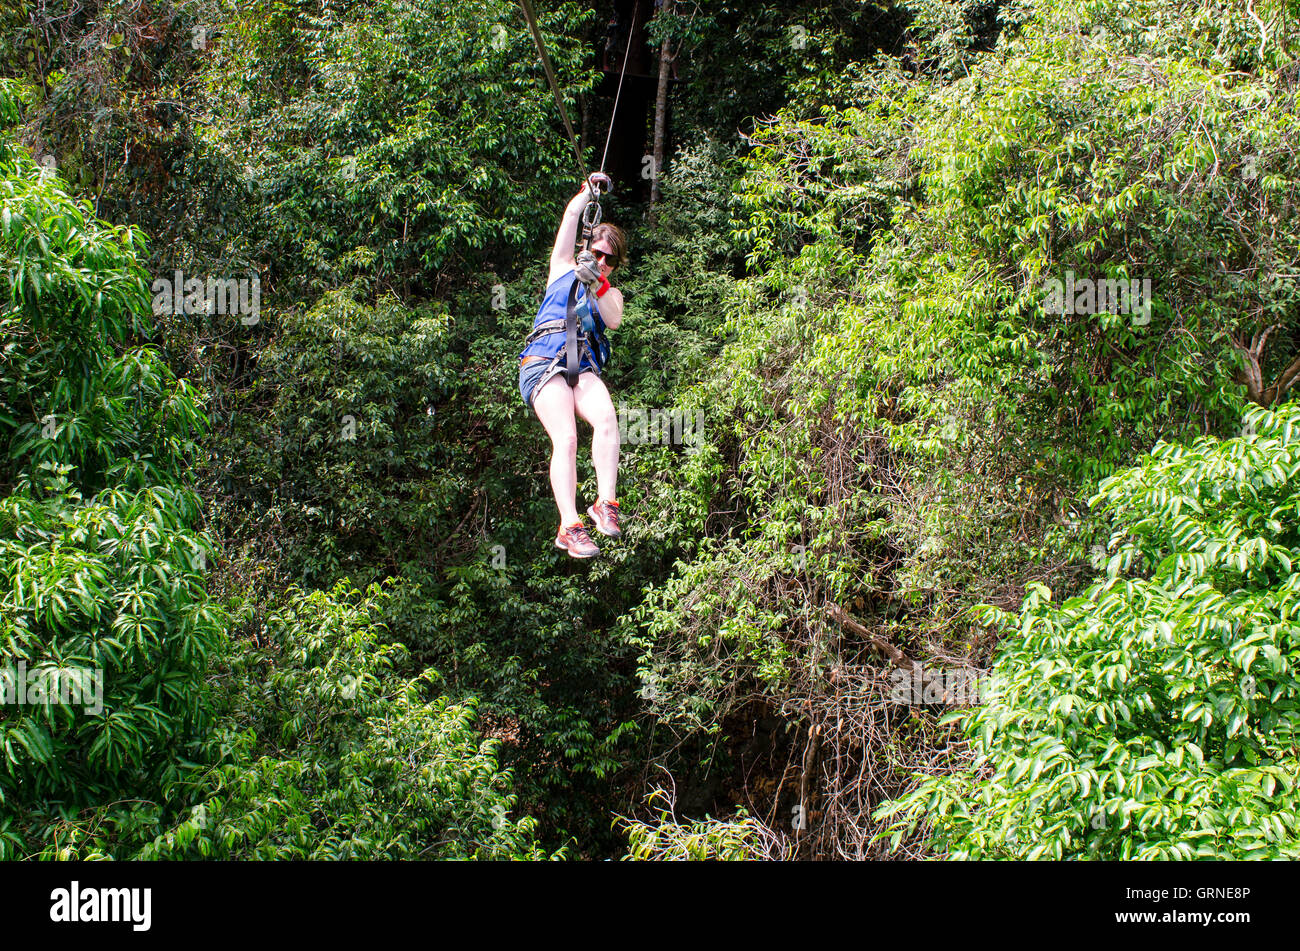 Zip wire Canopy Adventures and Secret Falls Koh Samui Thailand & Zip wire Canopy Adventures and Secret Falls Koh Samui Thailand ...